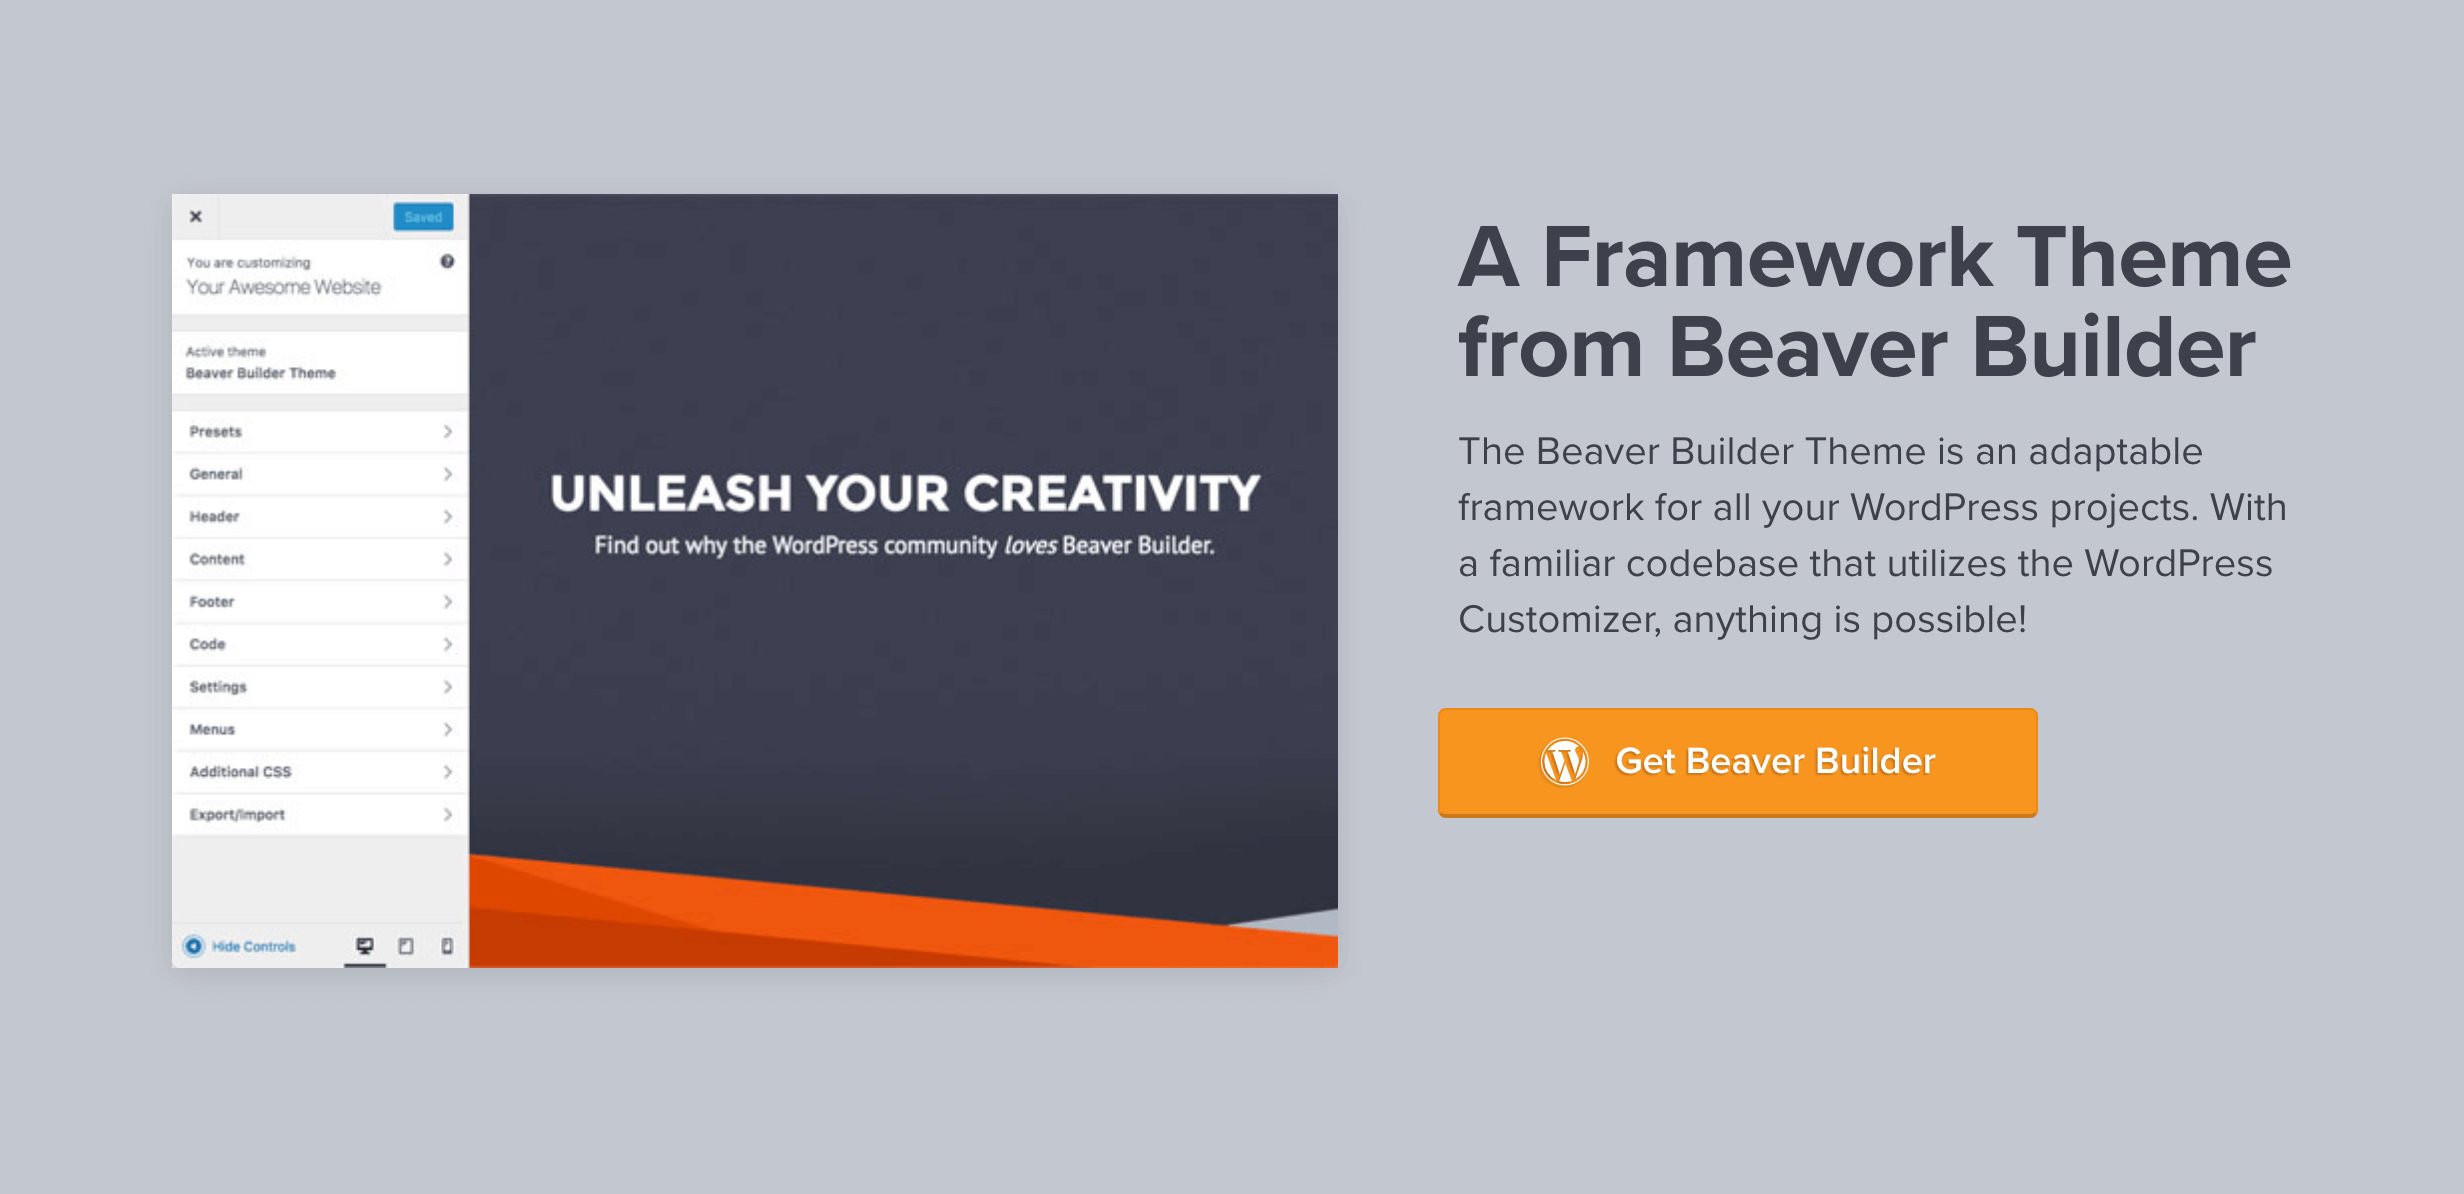 The Beaver Builder Framework Theme.